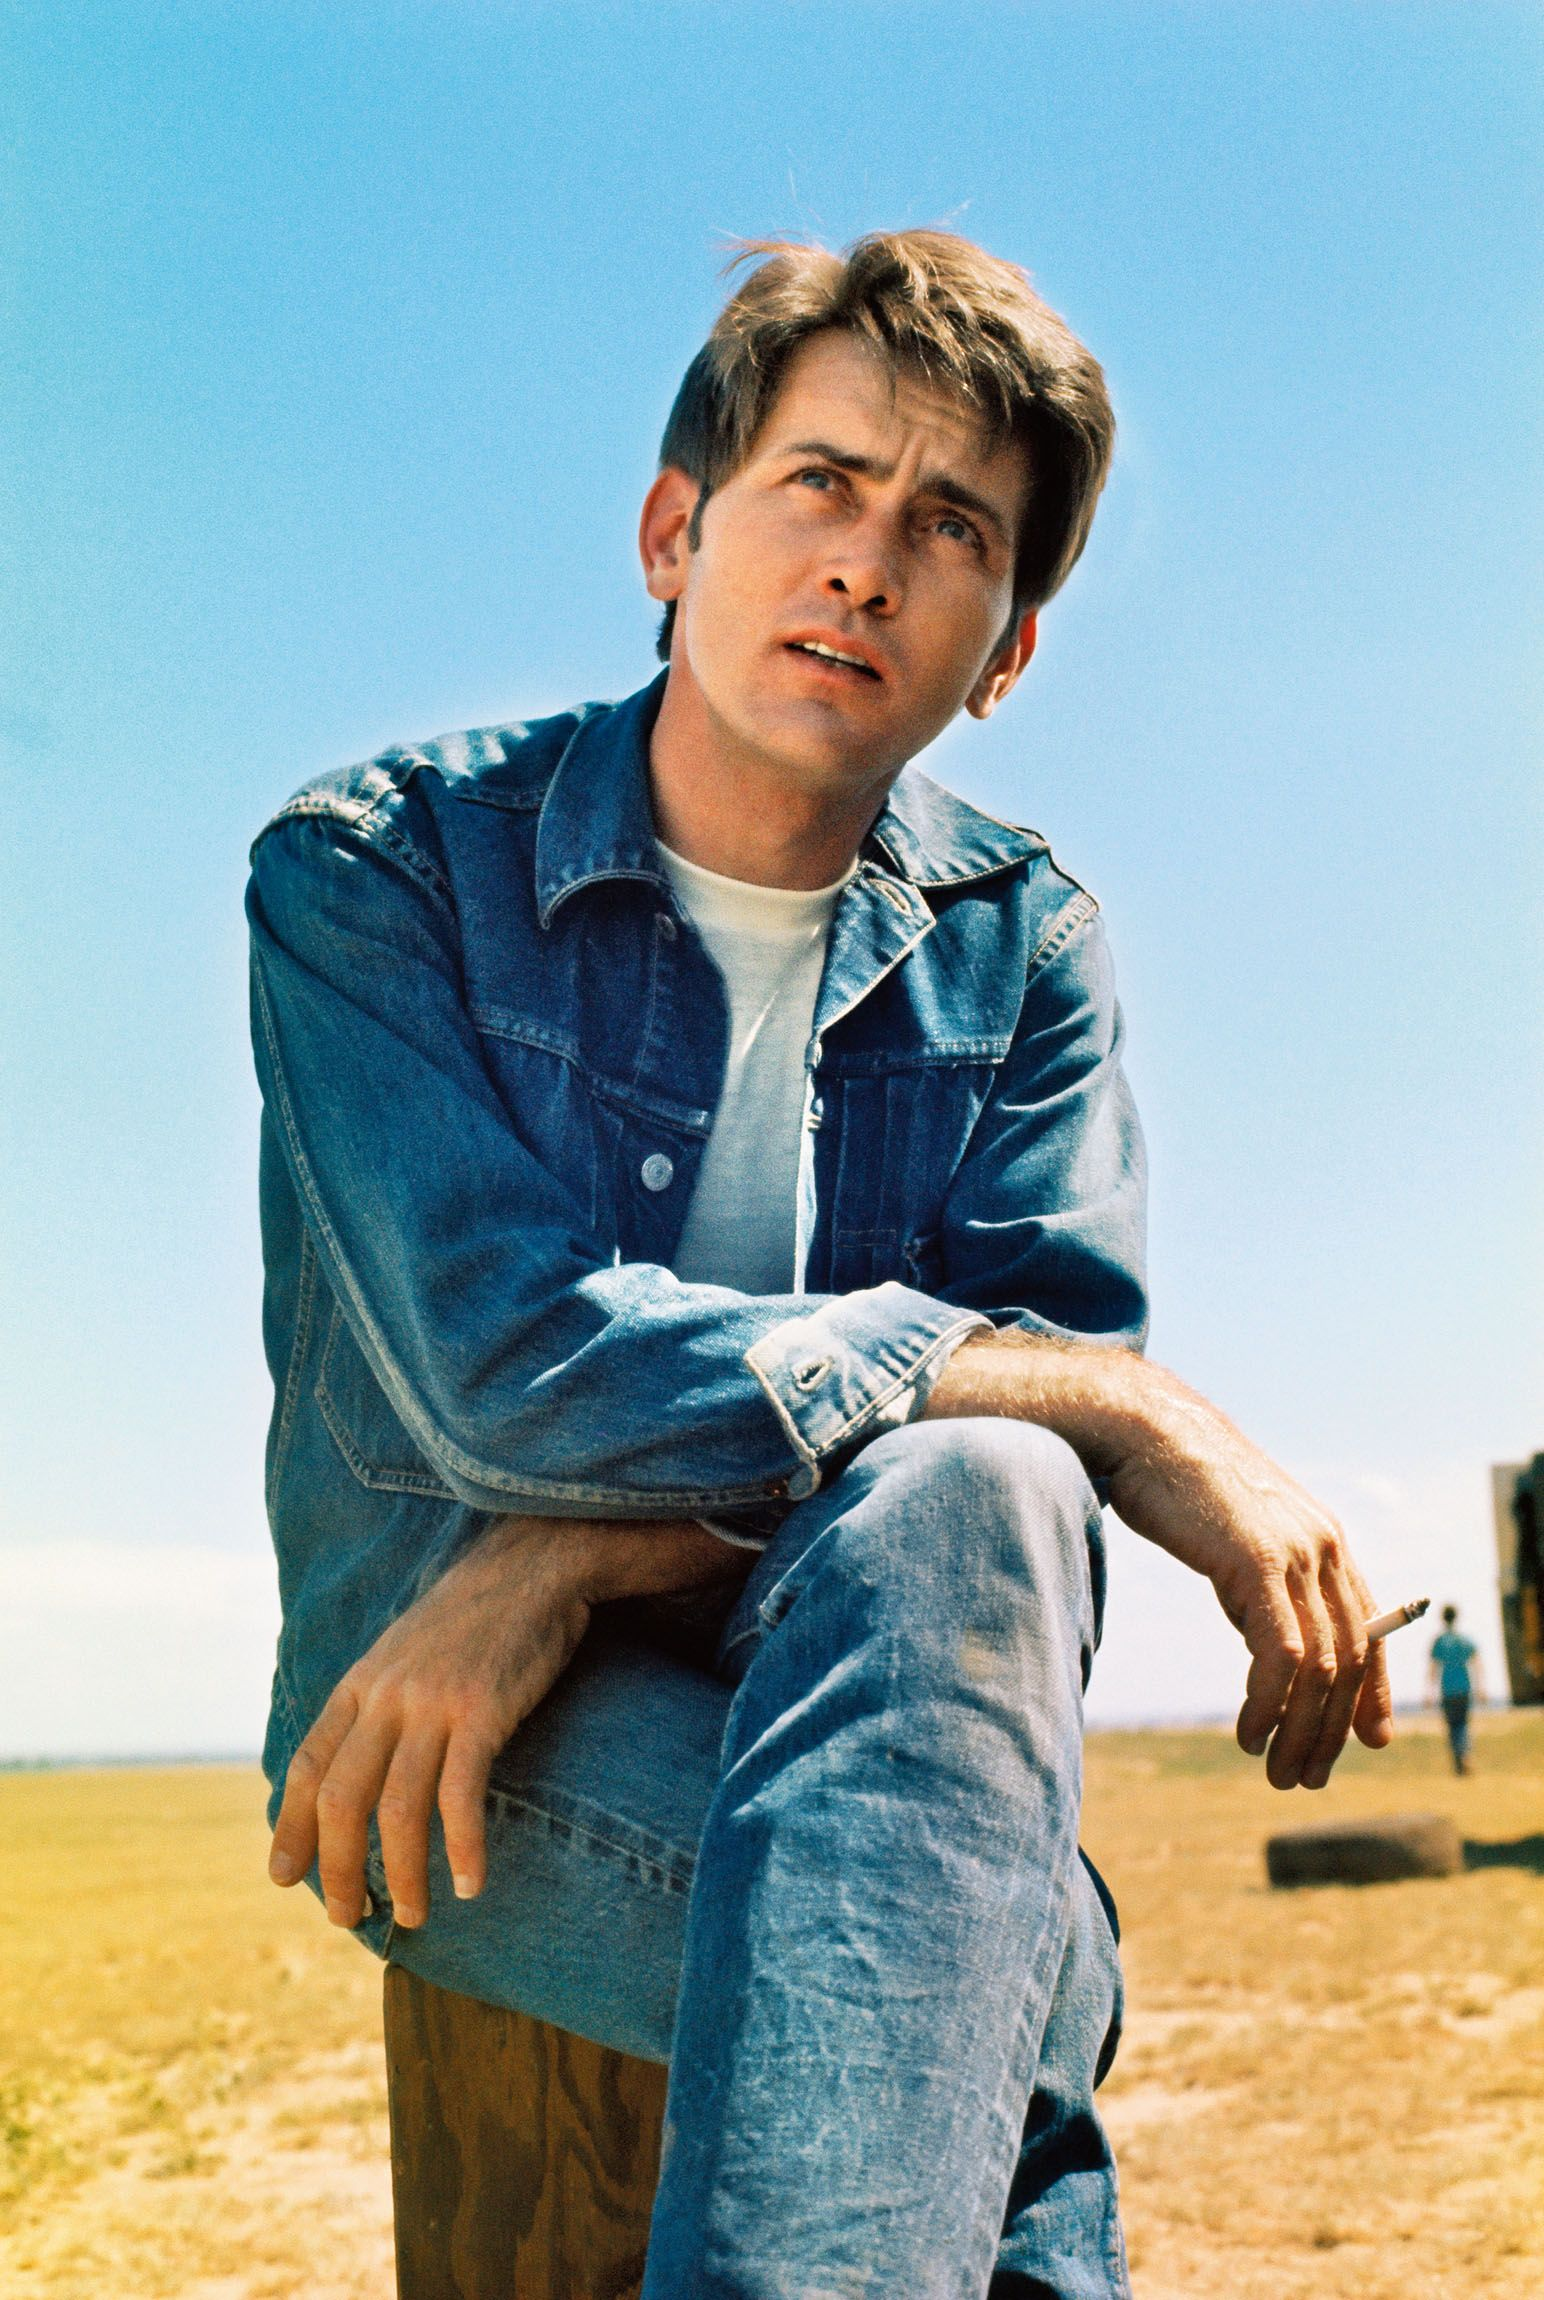 """Martin Sheen graciously took the time to pose in character on the set of Badlands "" in La Junta, Colorado in 1972, according to Resnick."